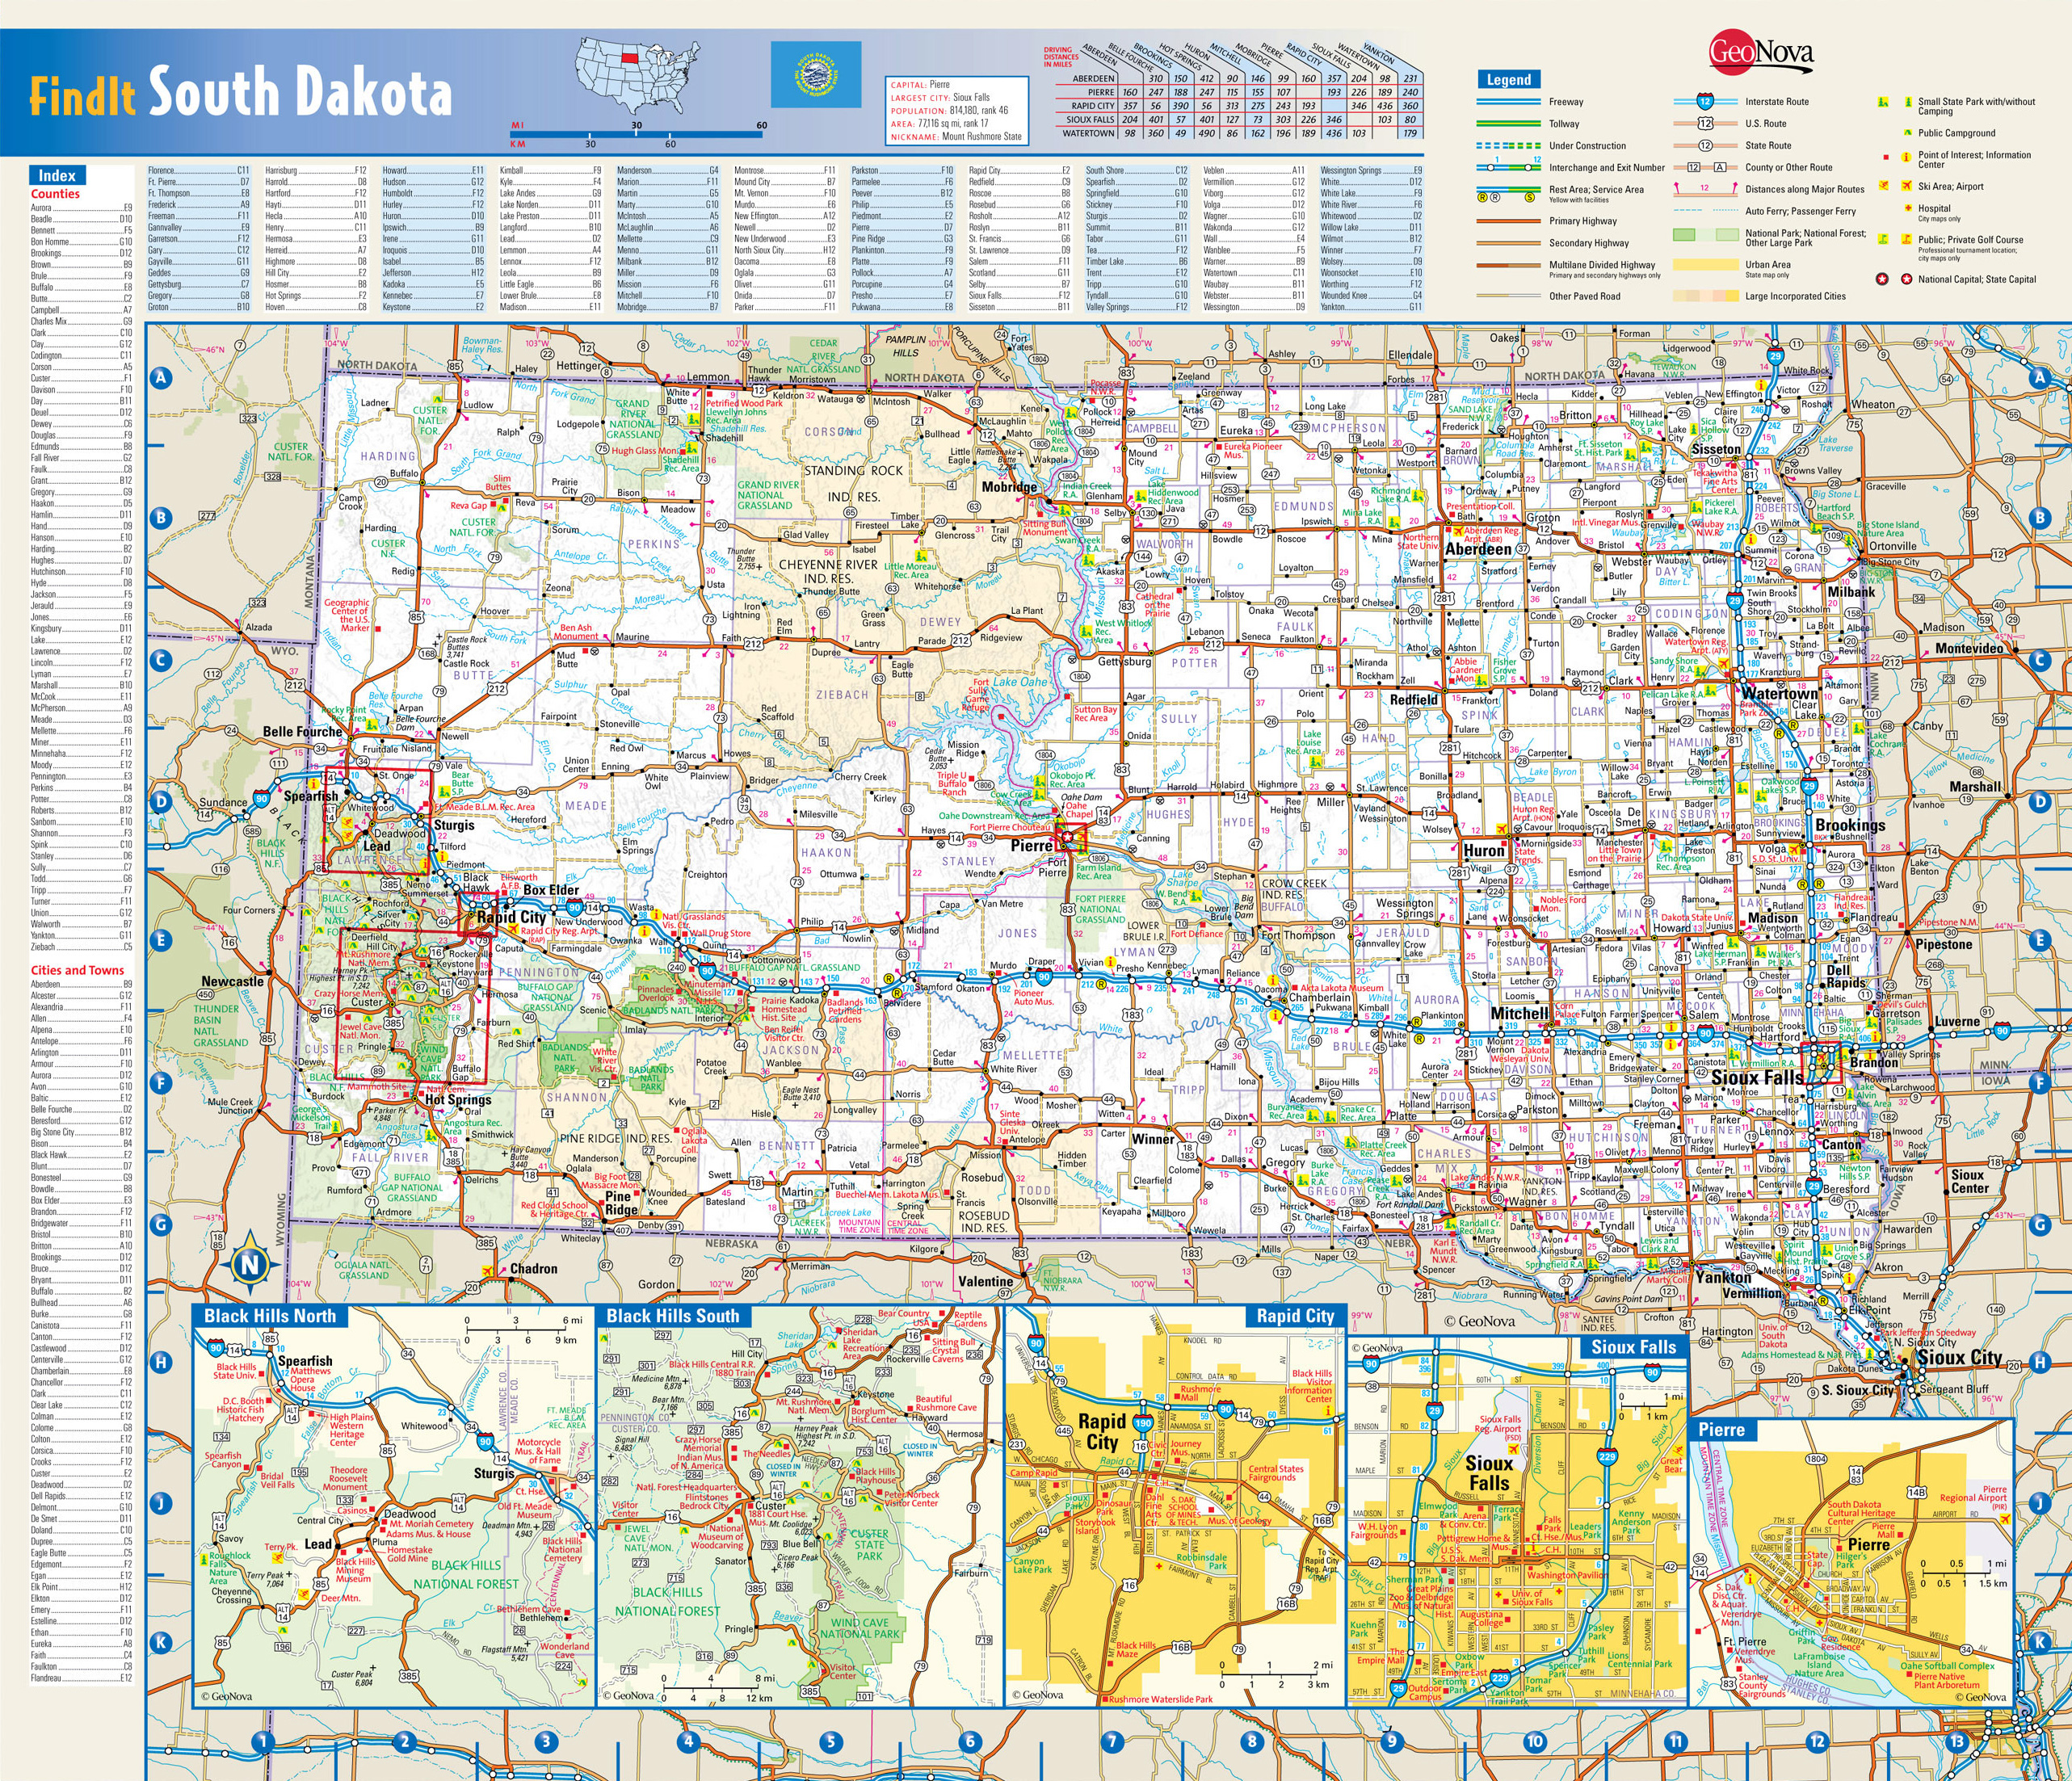 Large Detailed Roads And Highways Map Of South Dakota State With - Map usa south